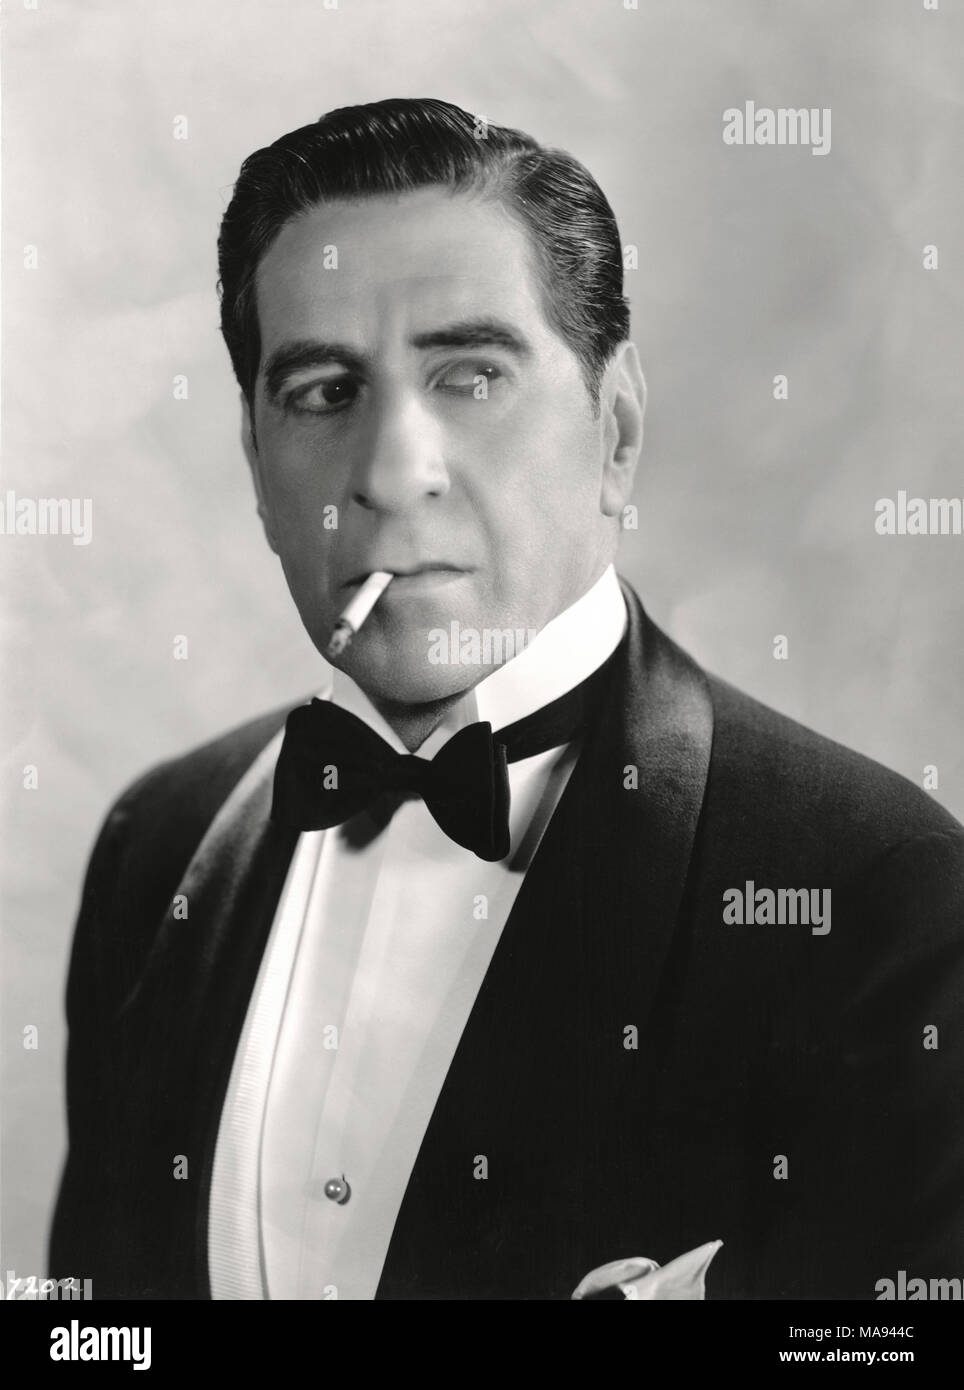 Actor Robert Warwick, Head and Shoulders Publicity Portrait Wearing Tuxedo and Smoking Cigarette, 1930's - Stock Image